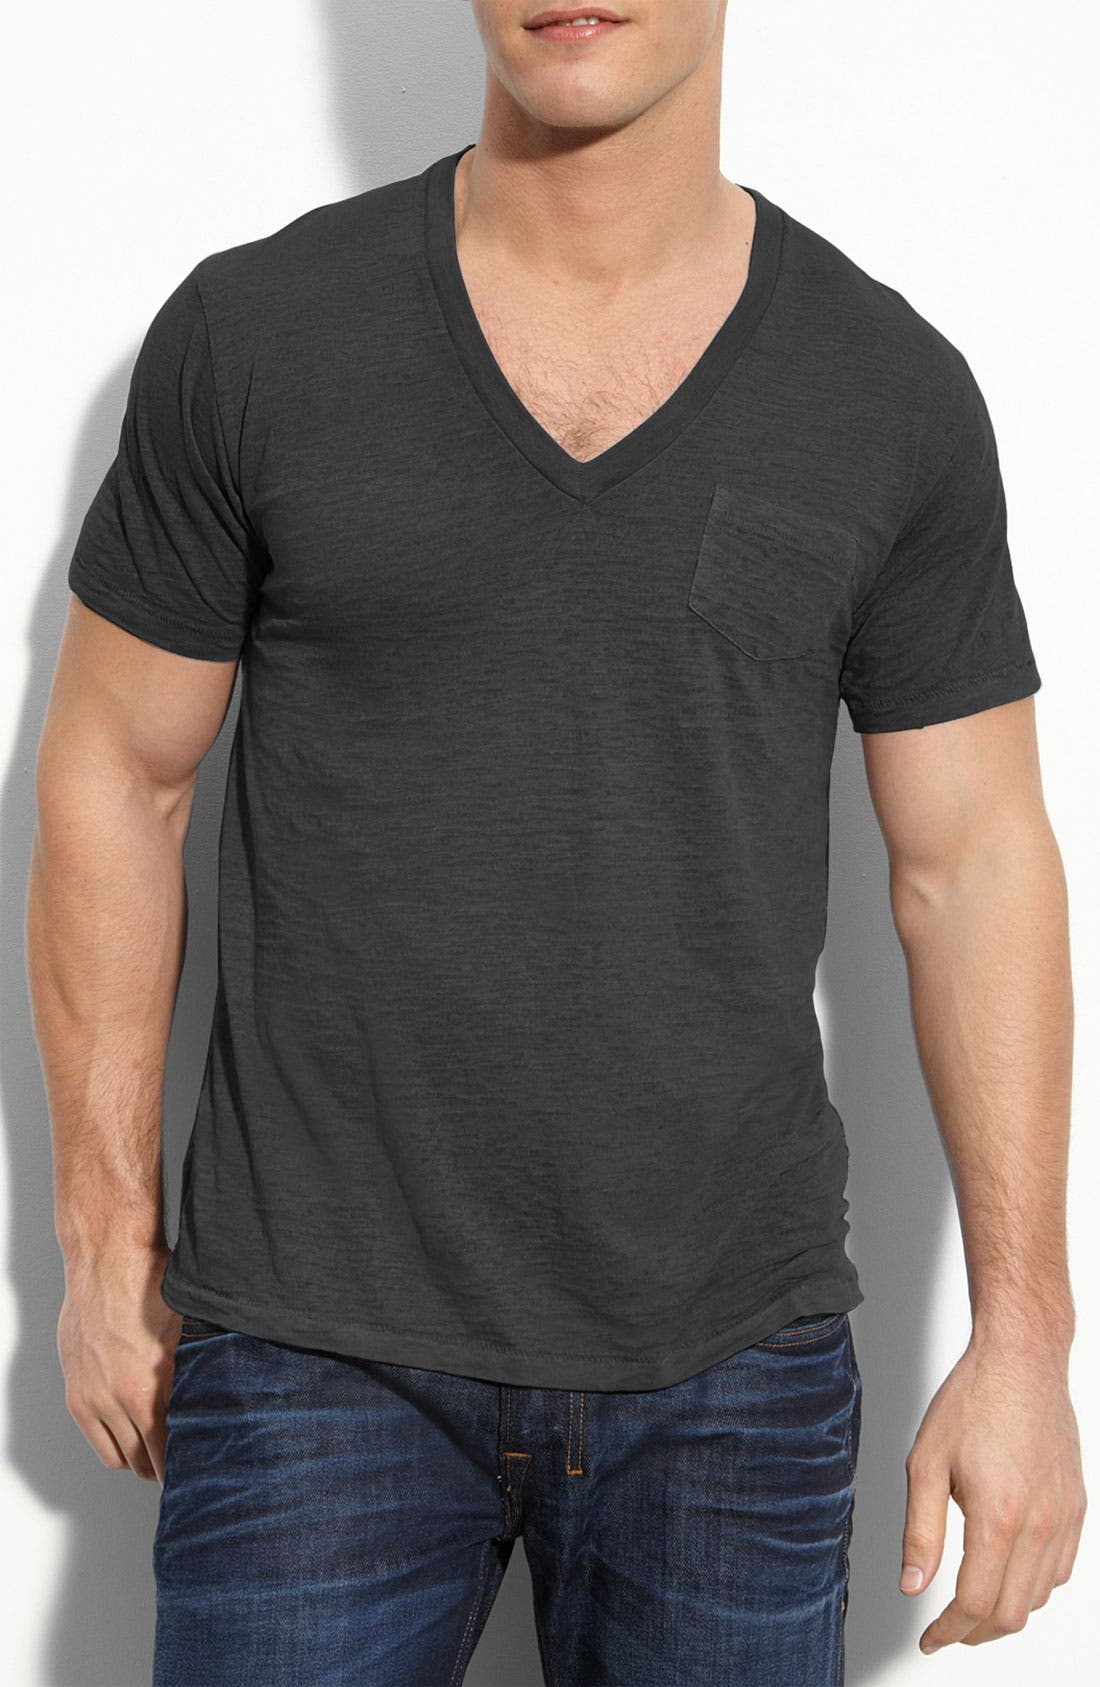 Main Image - Alternative Burnout V-Neck T-Shirt